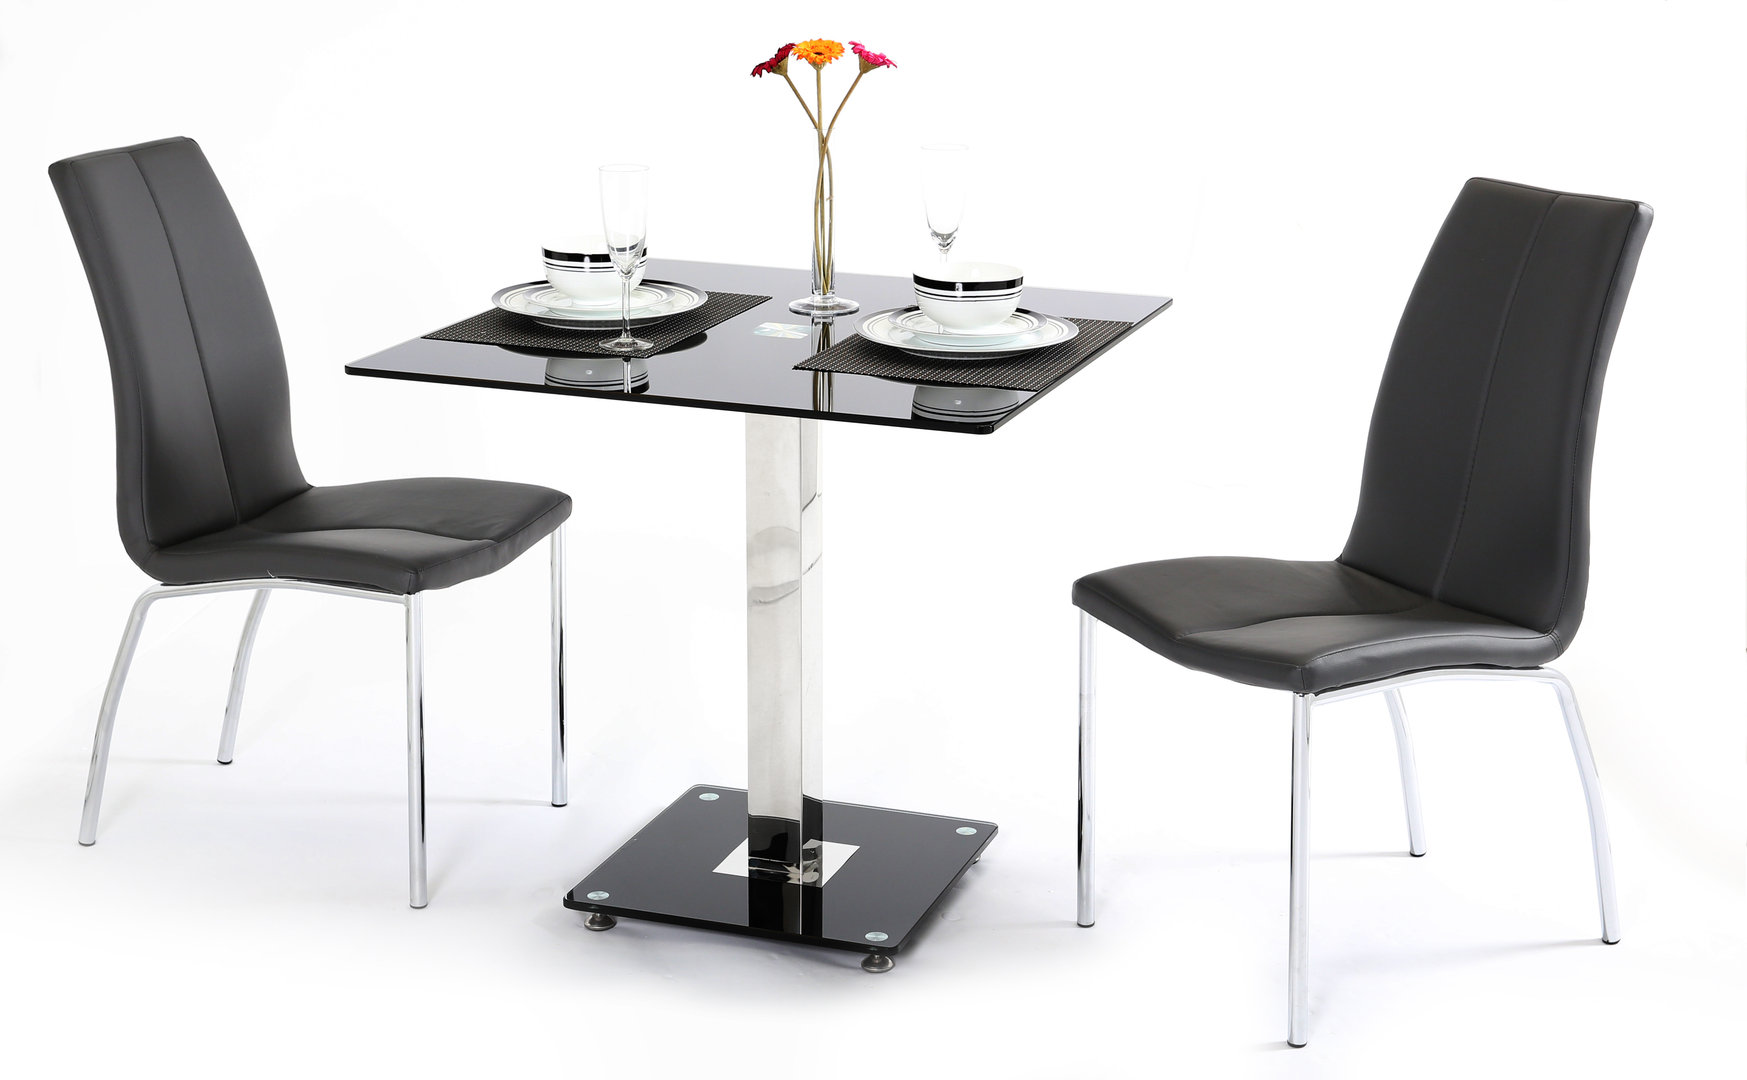 Glass Dining Table Set For 2: Black Glass Dining Table And 2 Chairs